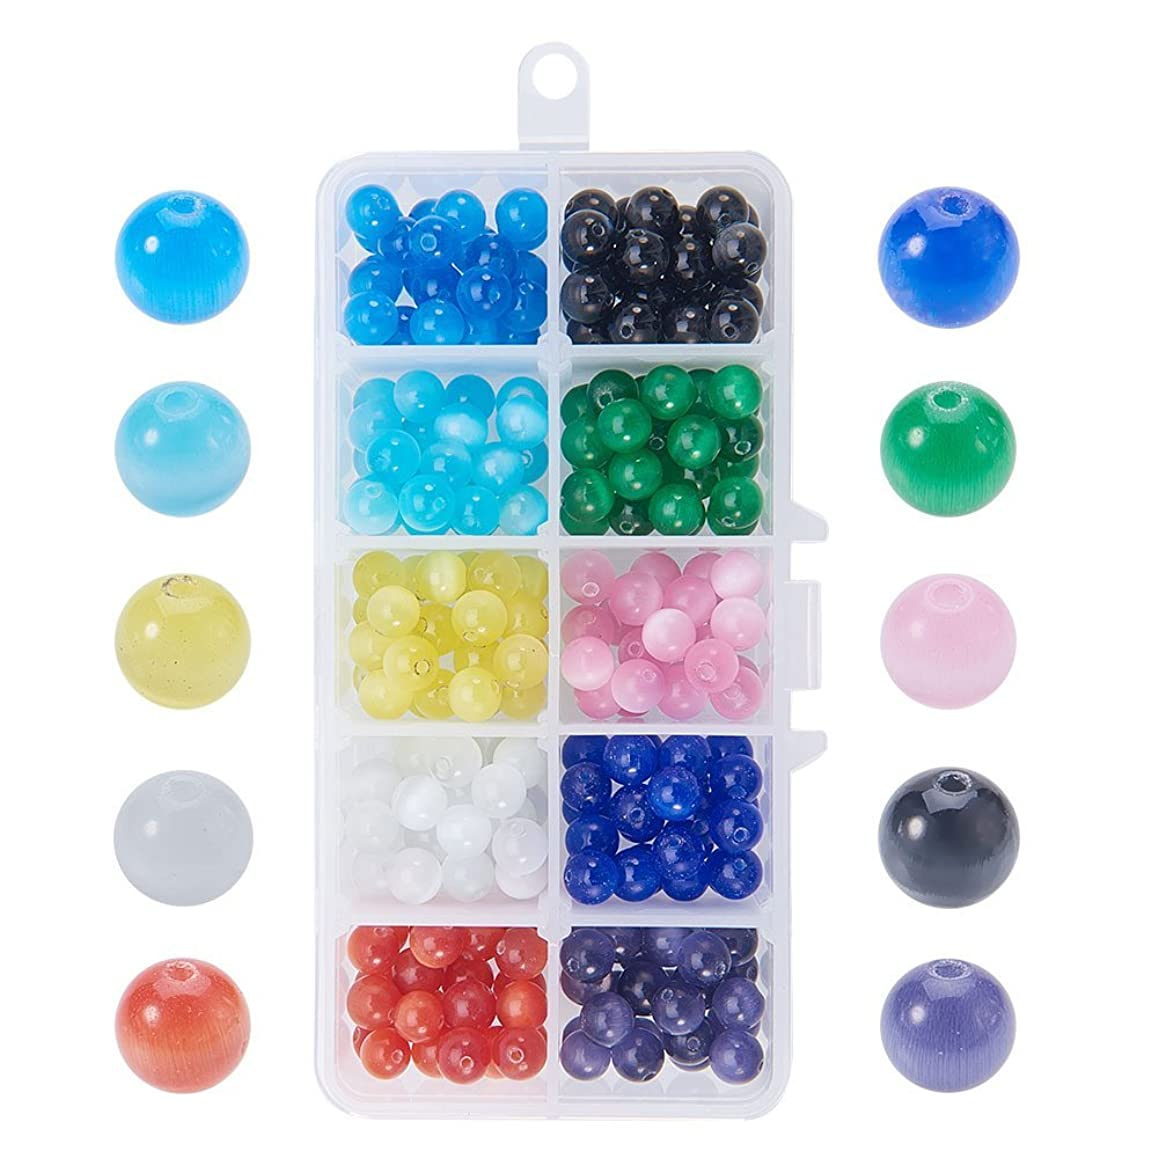 NBEADS 1 Box 8mm 250 Pcs Cat Eye Glass Beads Natural Gemstone Round Loose Stone Beads for Jewelry Making and Craft